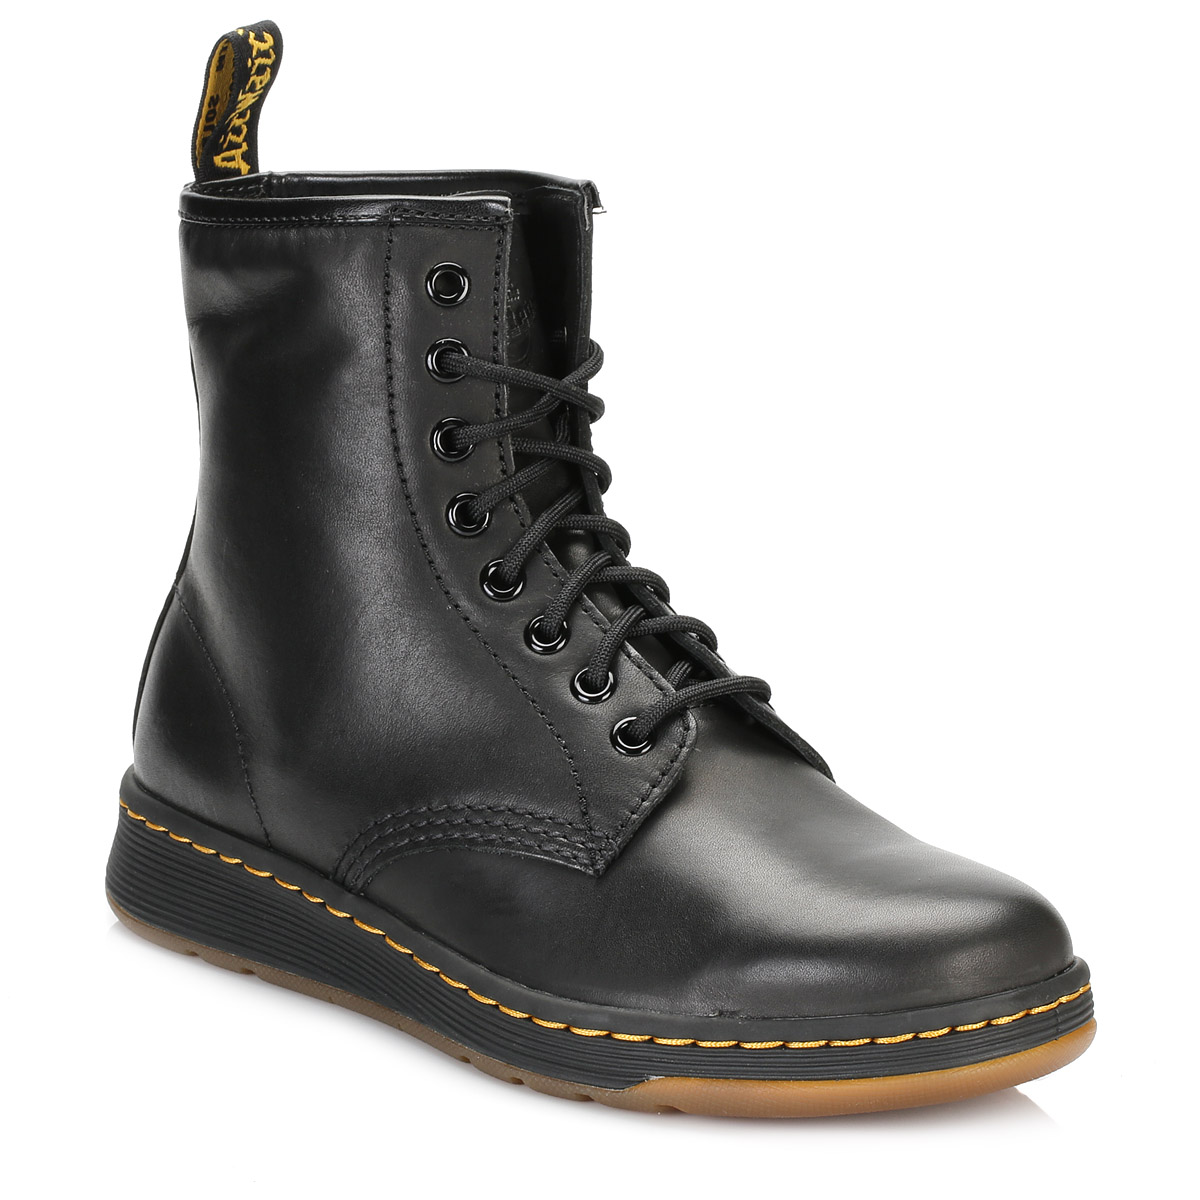 dr martens unisex mid calf boots black newton 8 eye lace up leather casual shoes ebay. Black Bedroom Furniture Sets. Home Design Ideas